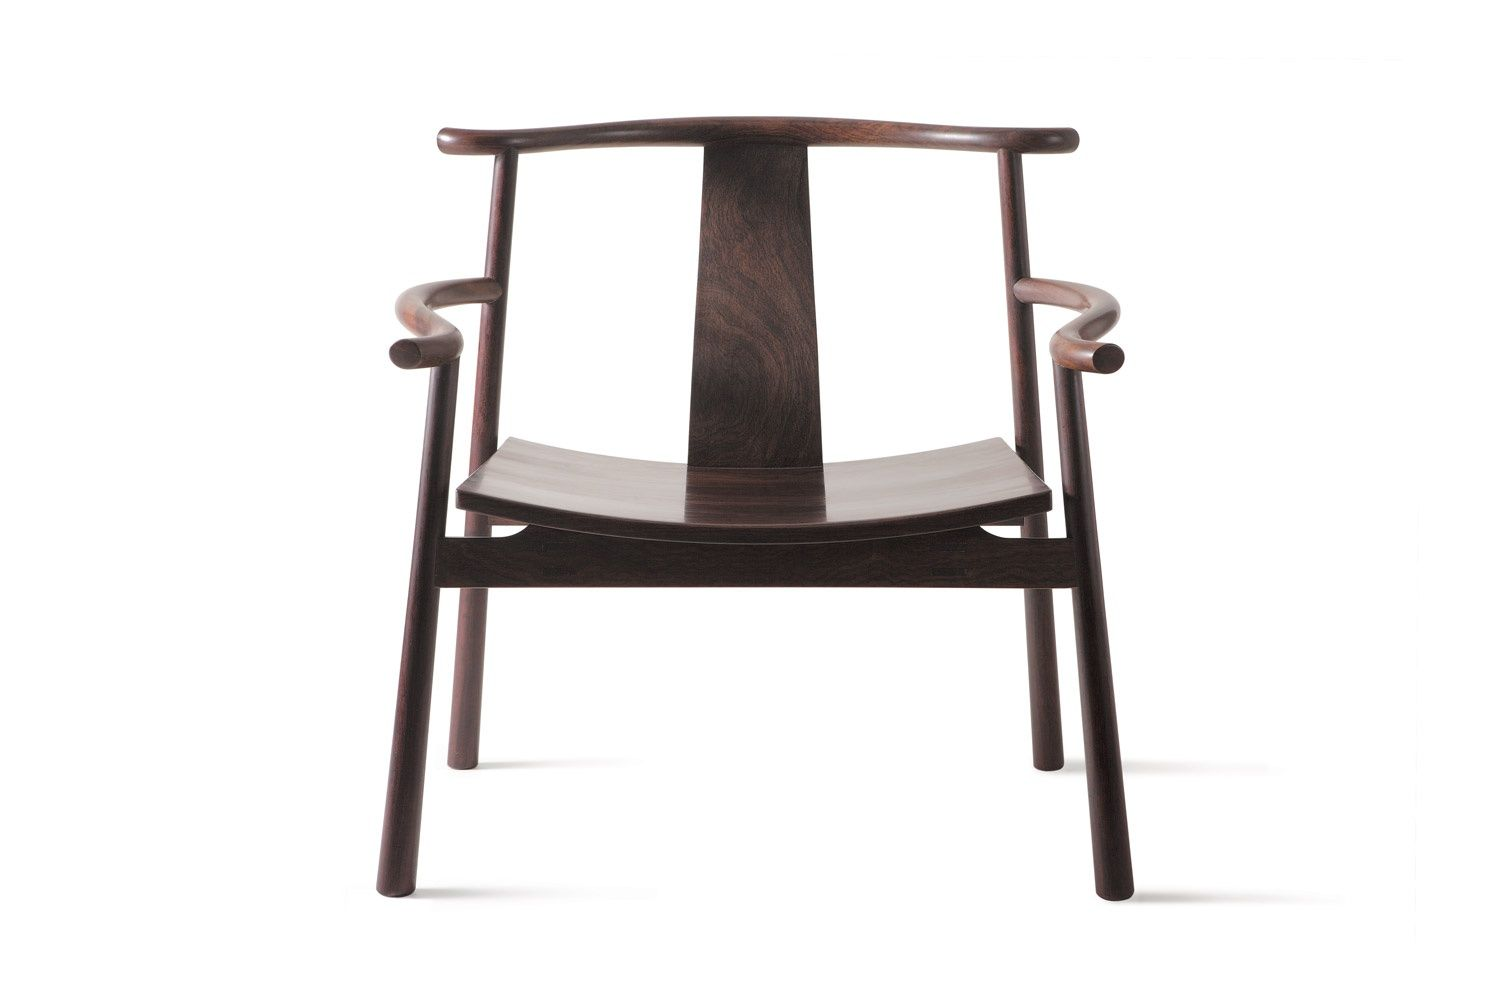 Hong Wei Abstract Furniture Forms Derived From The Chinese Language China Design Centre In 2020